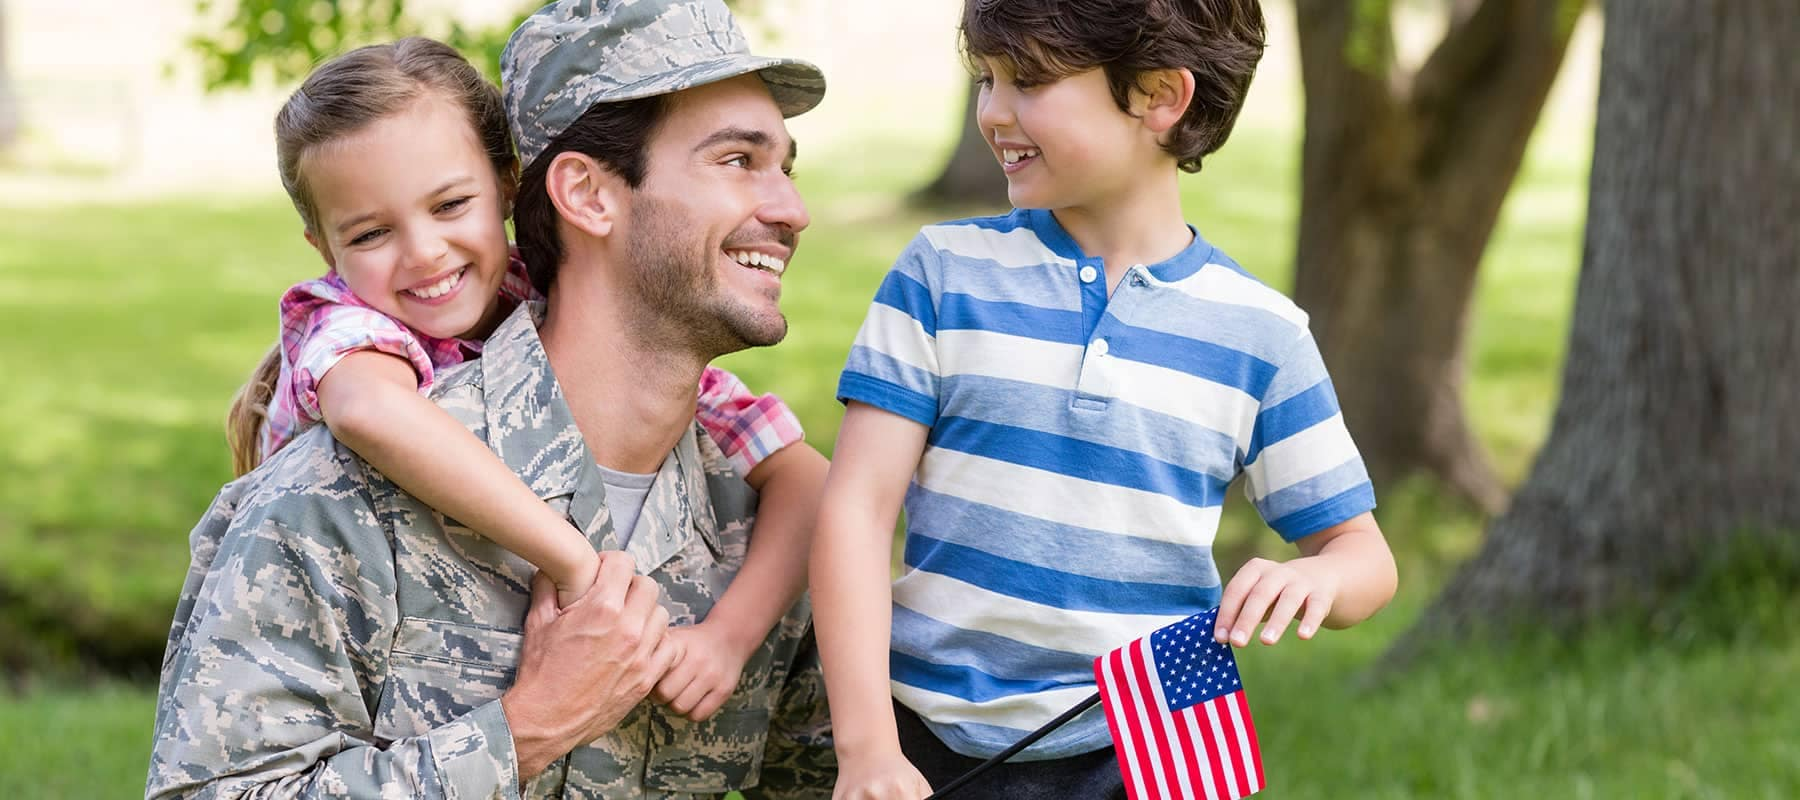 military man receives hug from daughter and smile from son